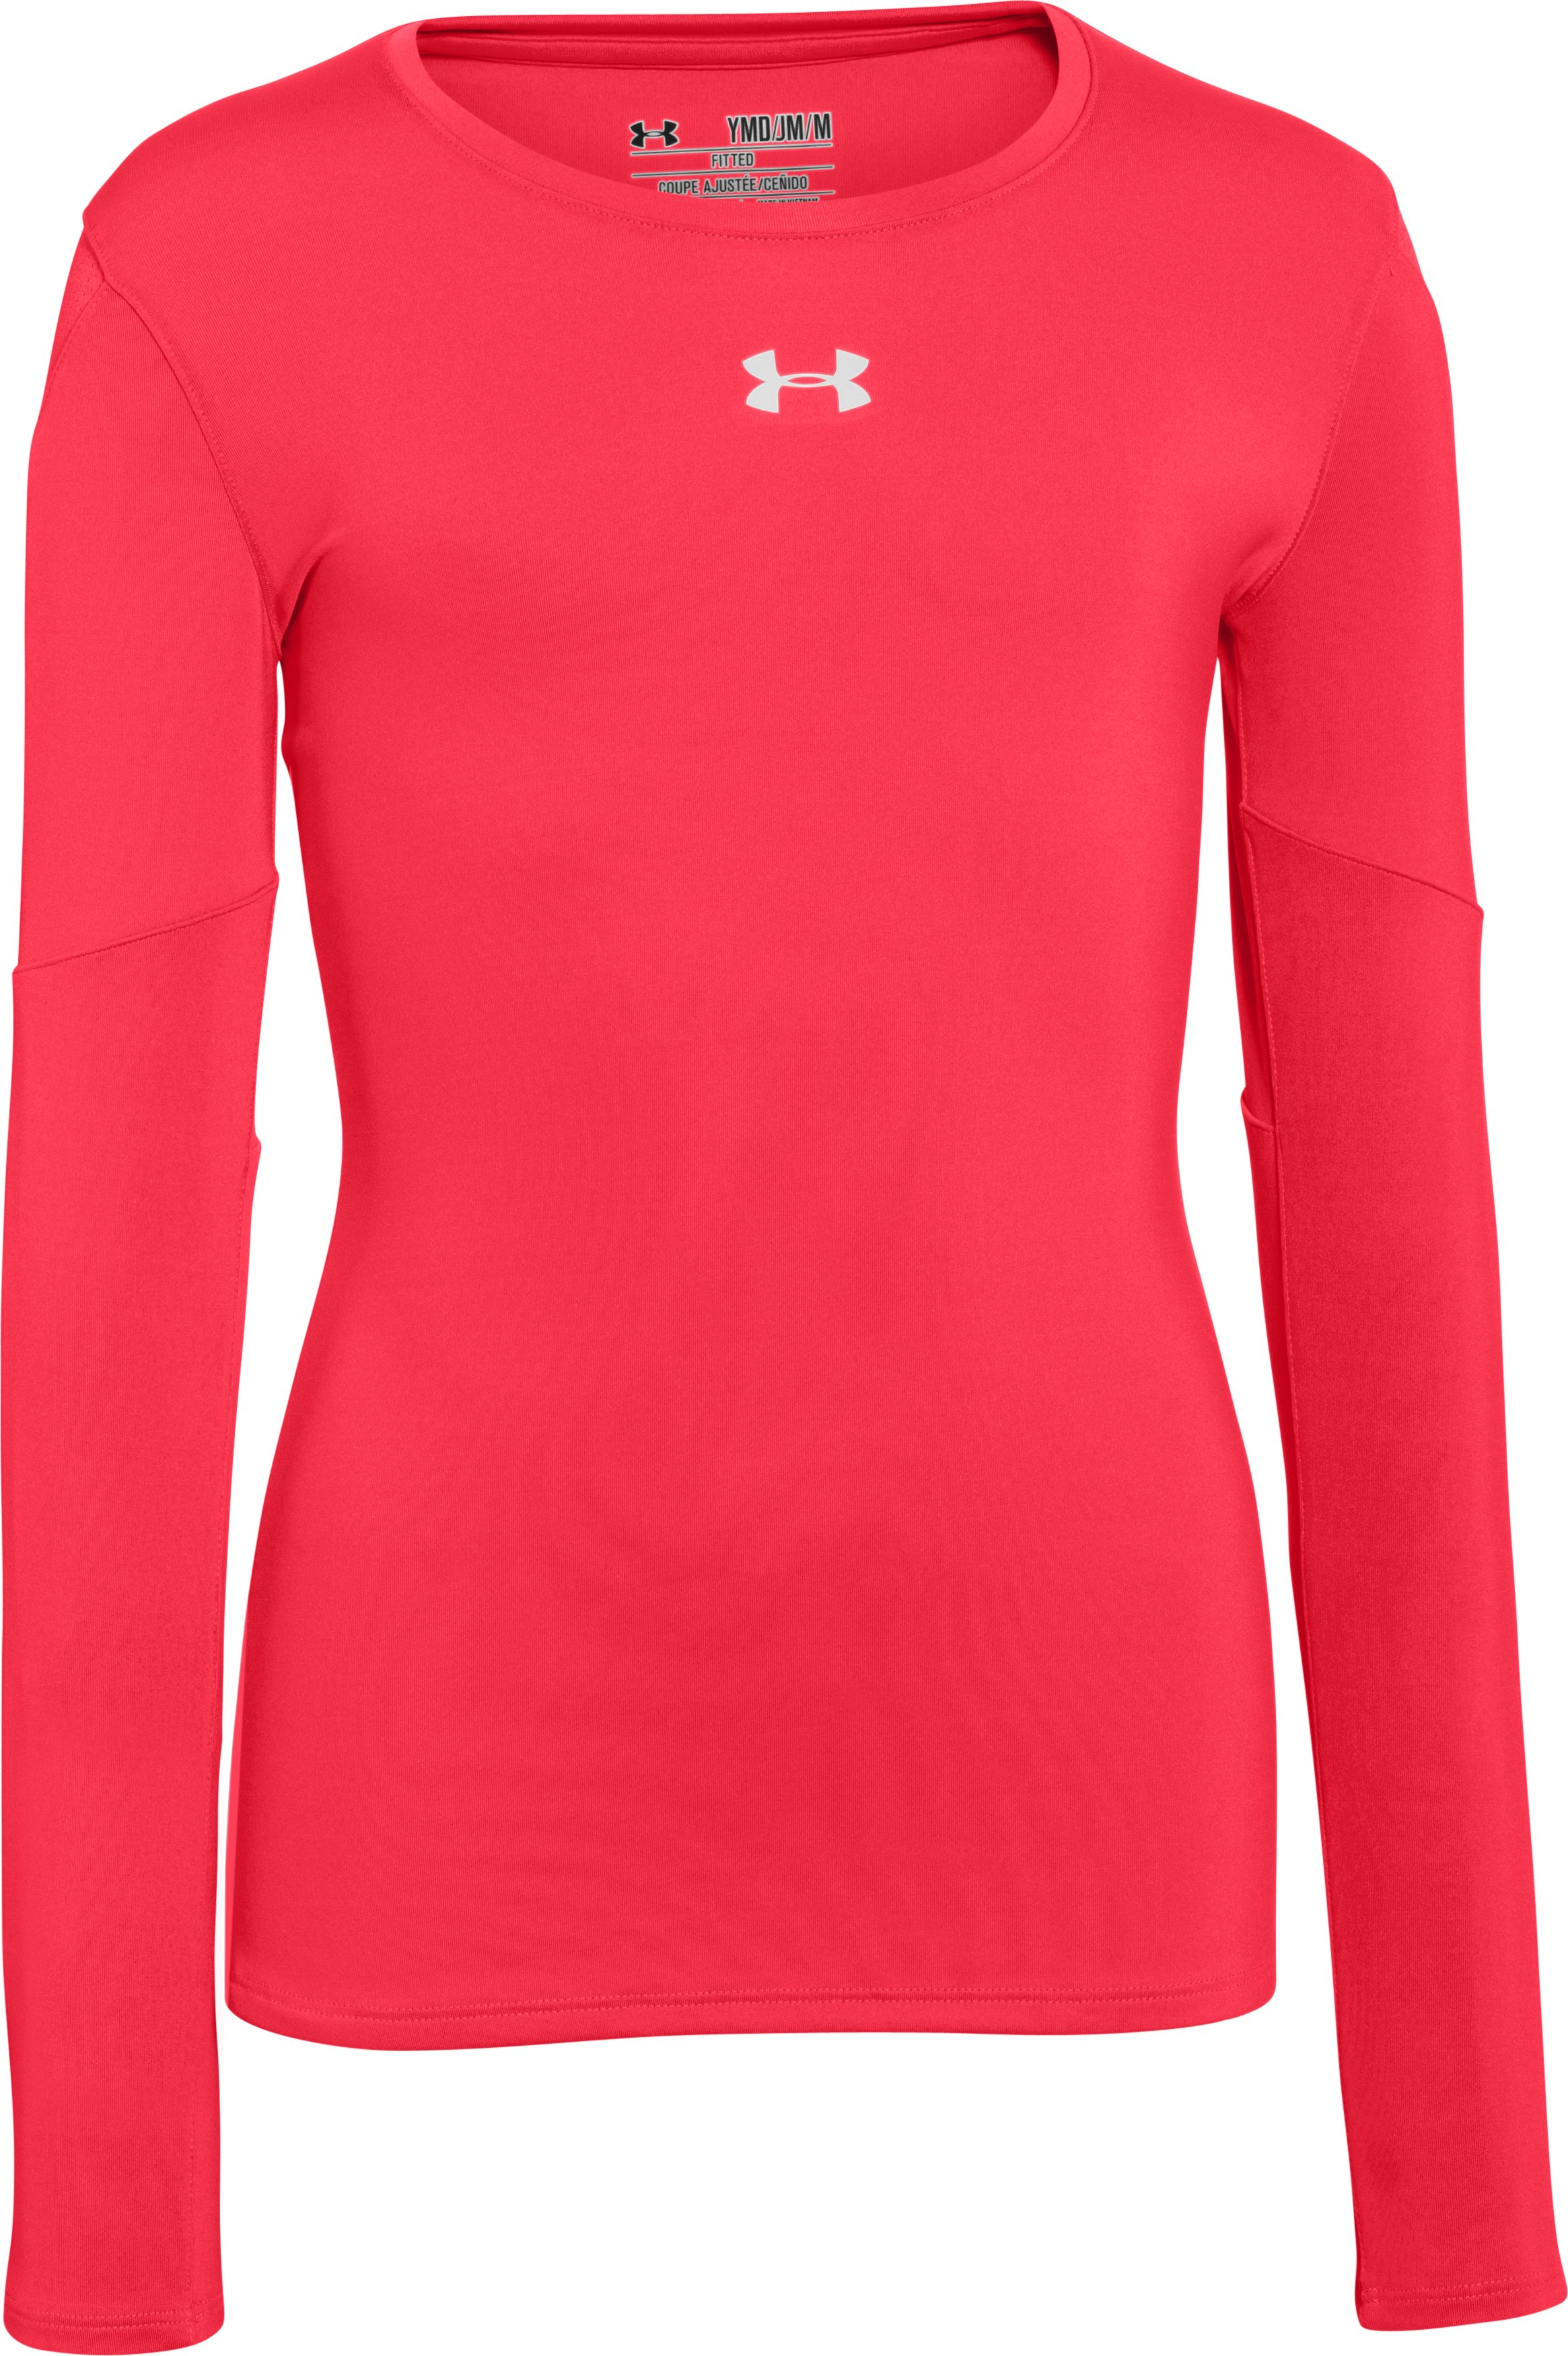 Girls' UA Block Party Long Sleeve Jersey, Neo Pulse, zoomed image